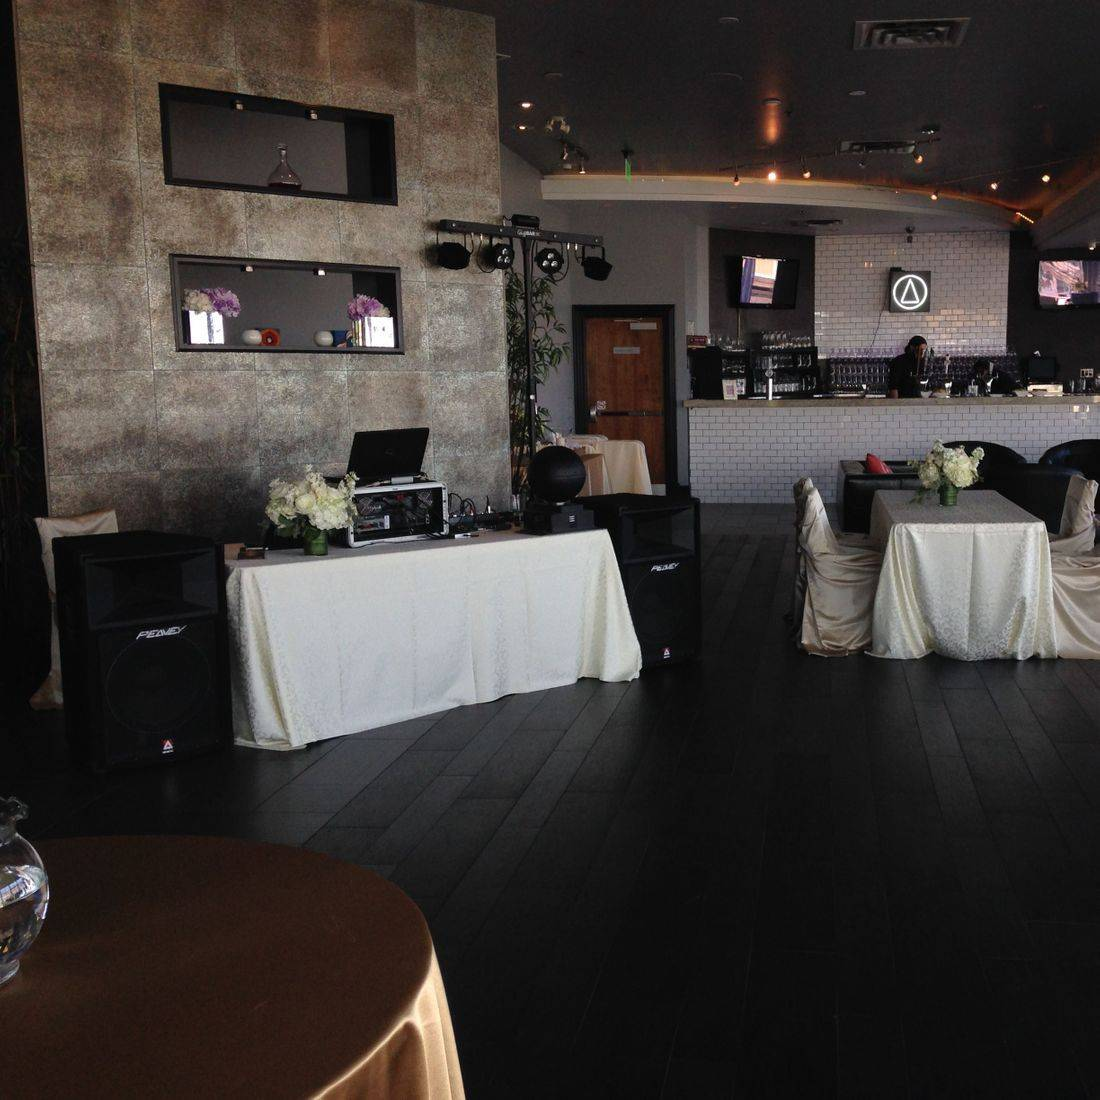 Mr. Productions DJ Service Dj'n a wedding at Compass Restaurant in Oakville.